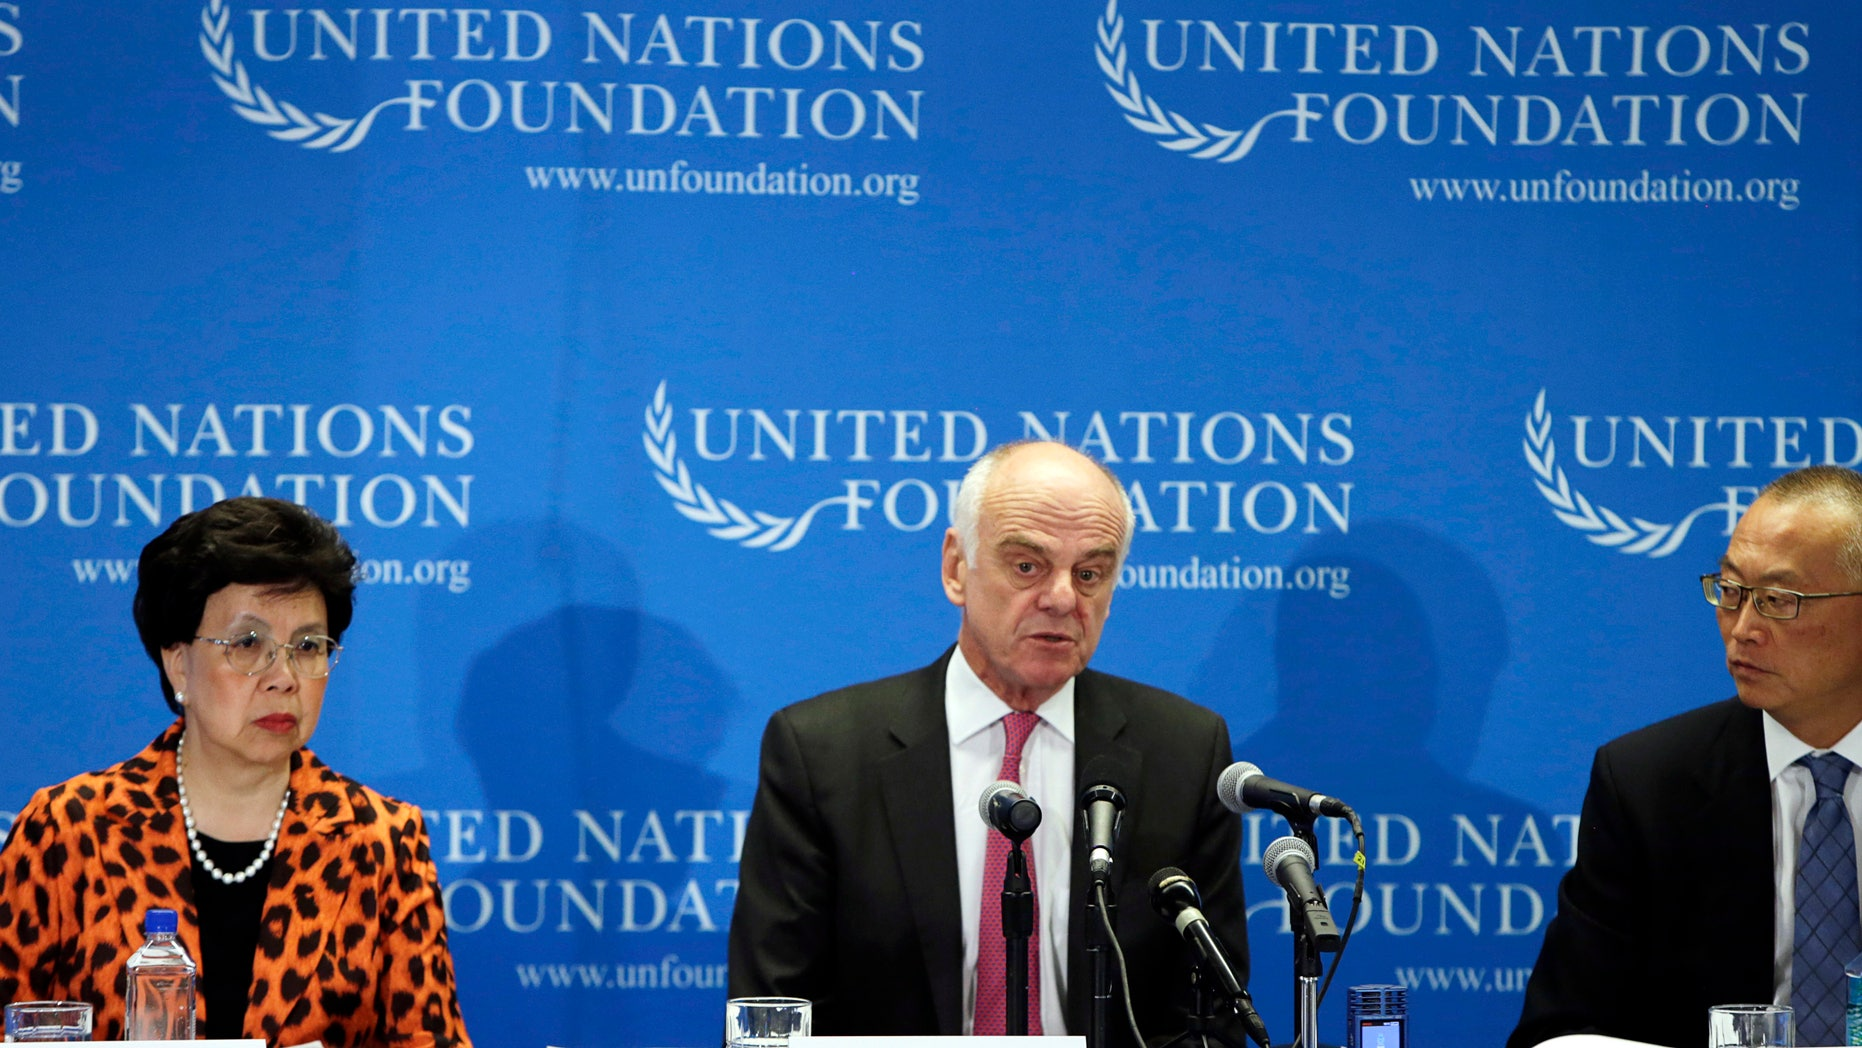 (L-R) World Health Organization (WHO) Director-General Dr. Margaret Chan, Senior United Nations System Coordinator for Ebola  Virus Disease Dr. David Nabarro, and Assistant WHO Director-General for Health Security Dr. Keiji Fukuda appear at a briefing to discuss the Ebola outbreak in West Africa at the UN Foundation in Washington September 3, 2014. REUTERS/Gary Cameron